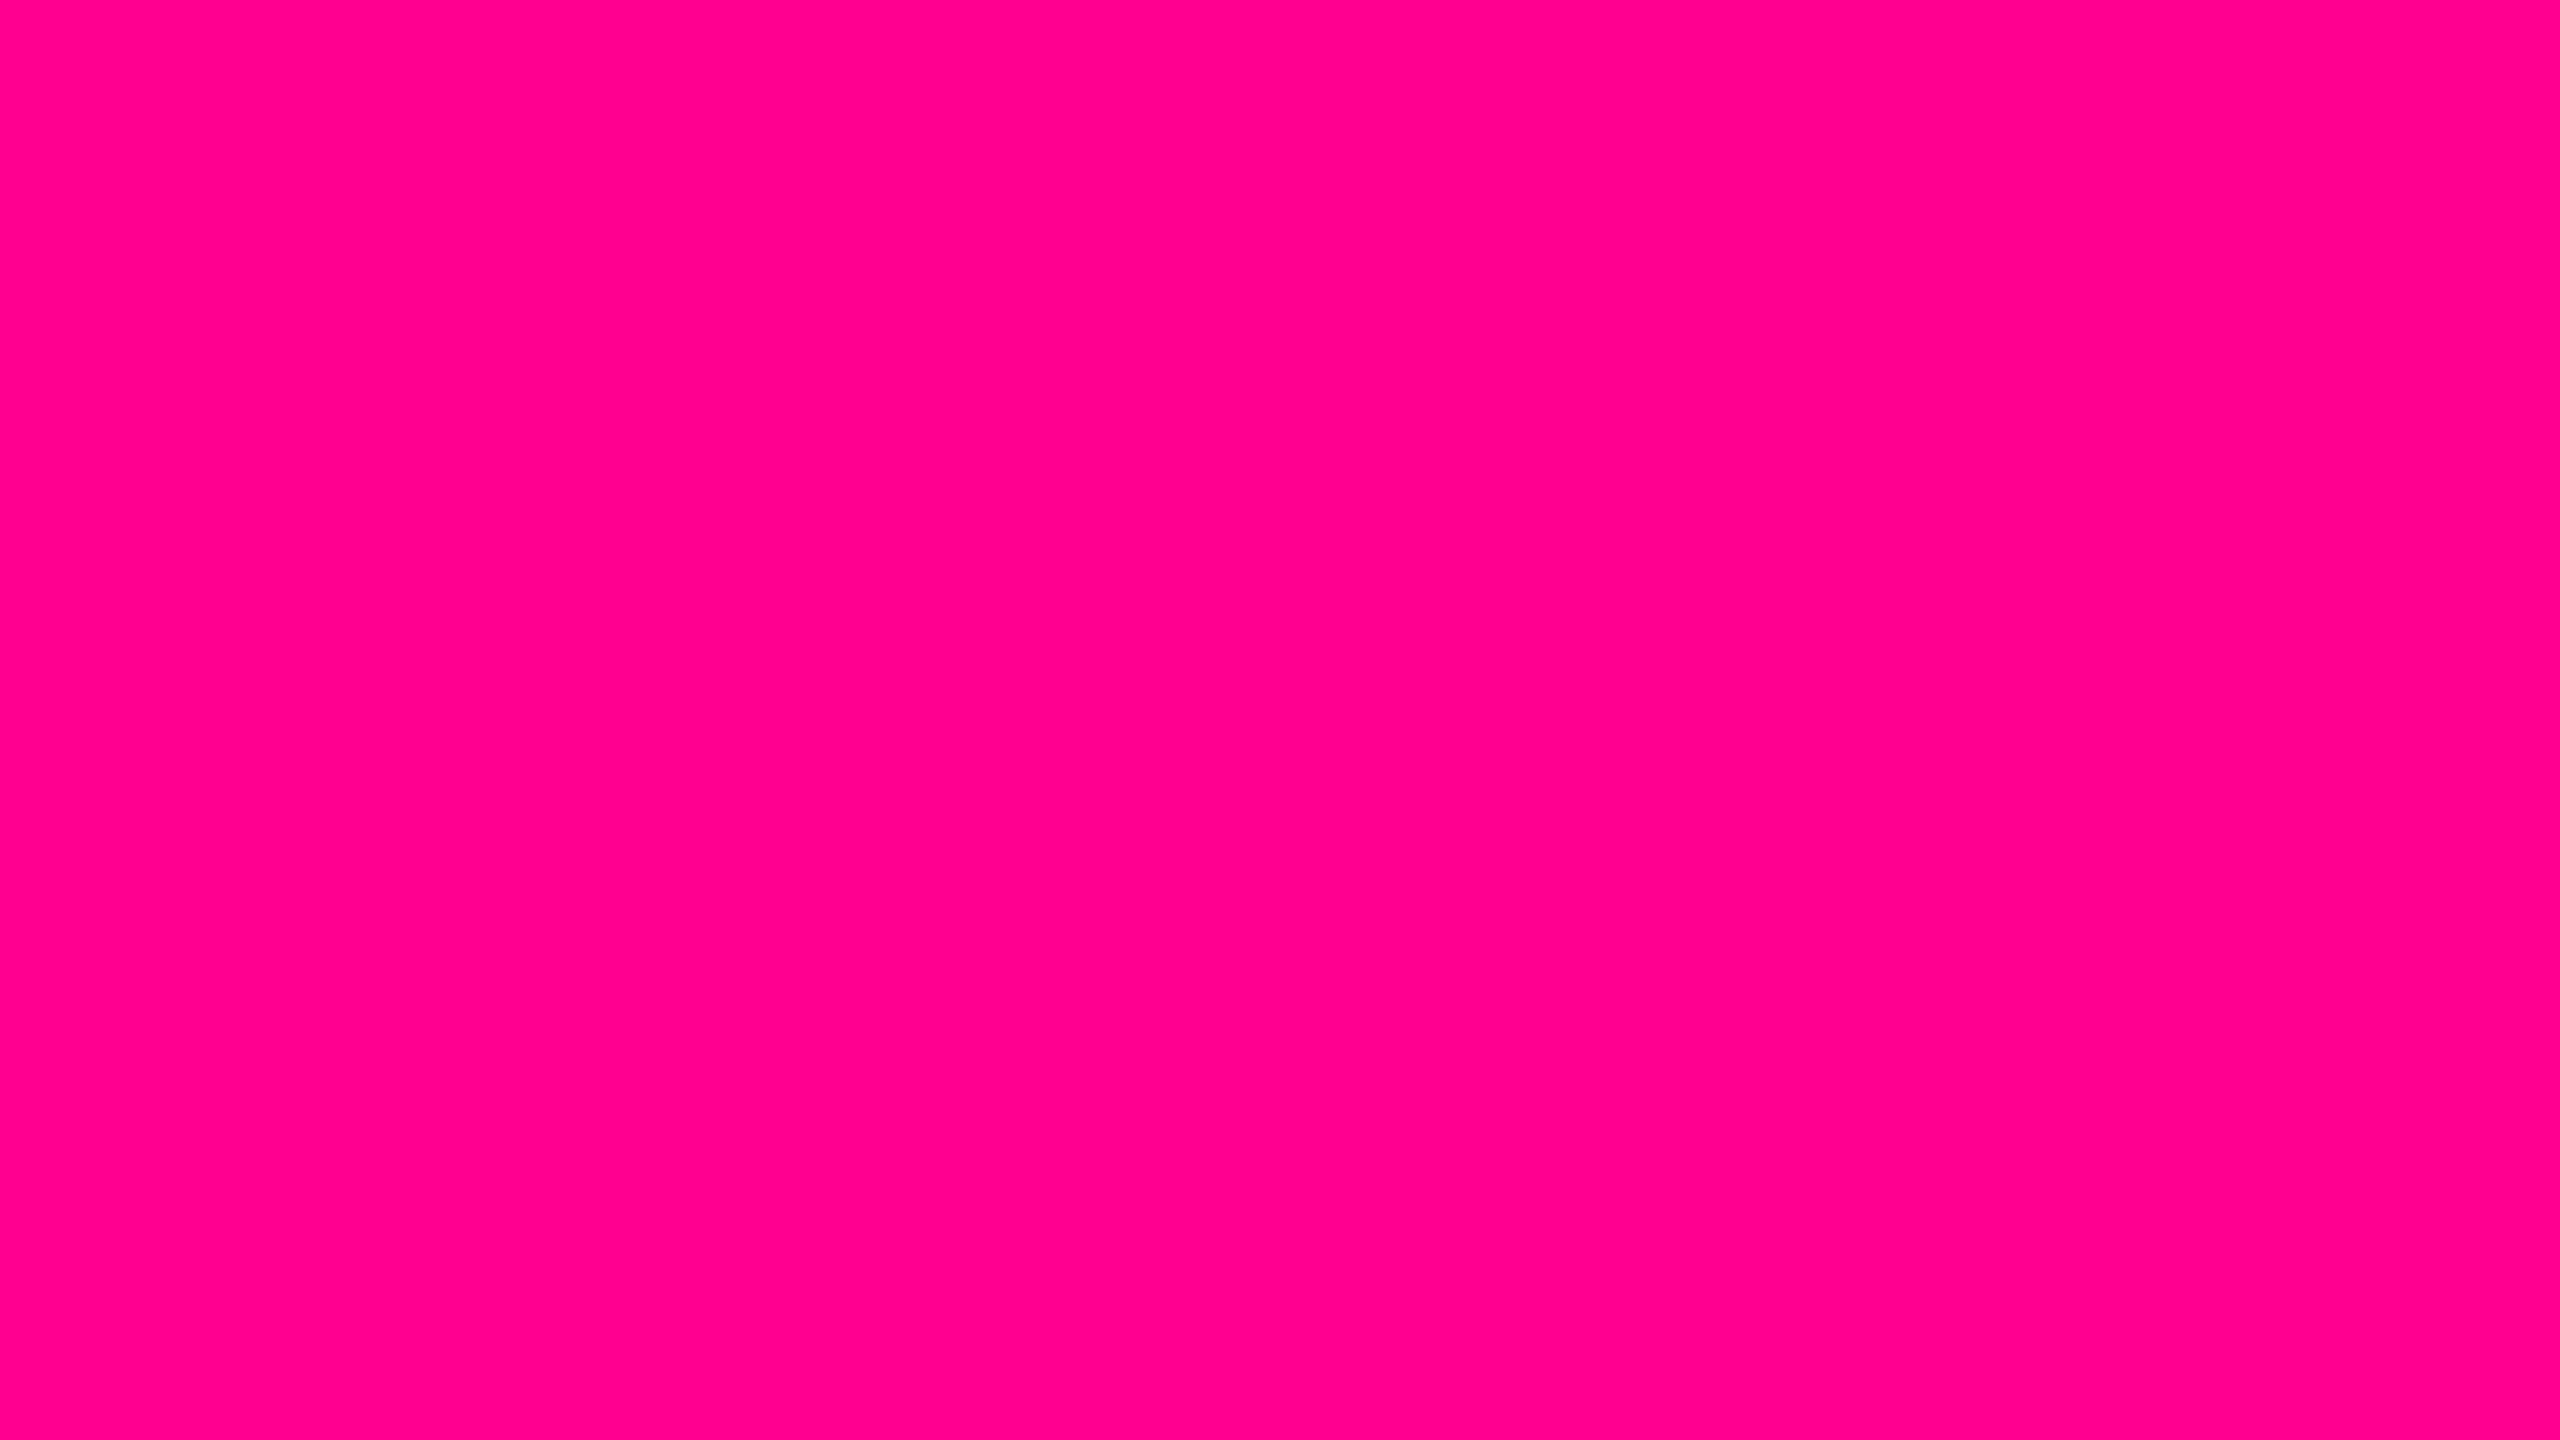 2560x1440 Magenta Process Solid Color Background